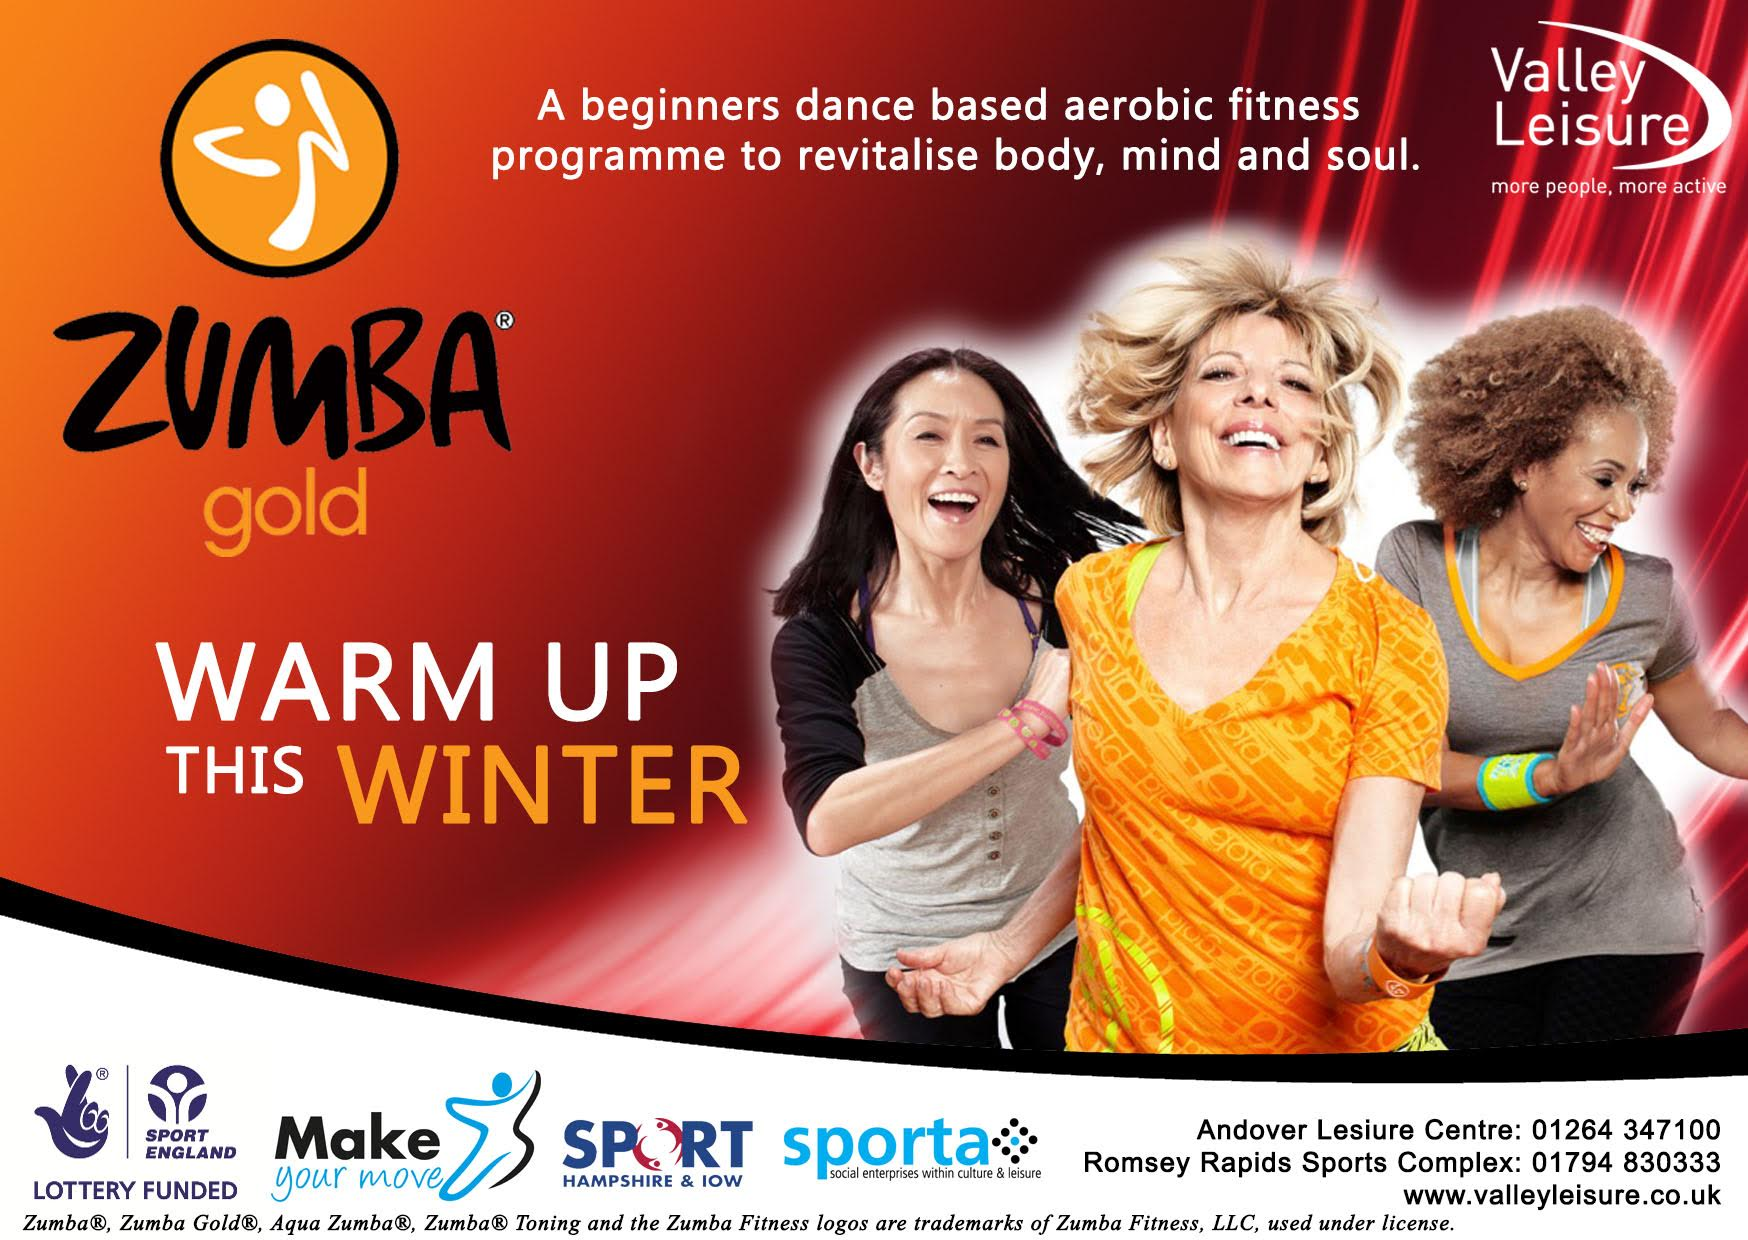 Sign Up For Free at Zumba® For The Golden Years